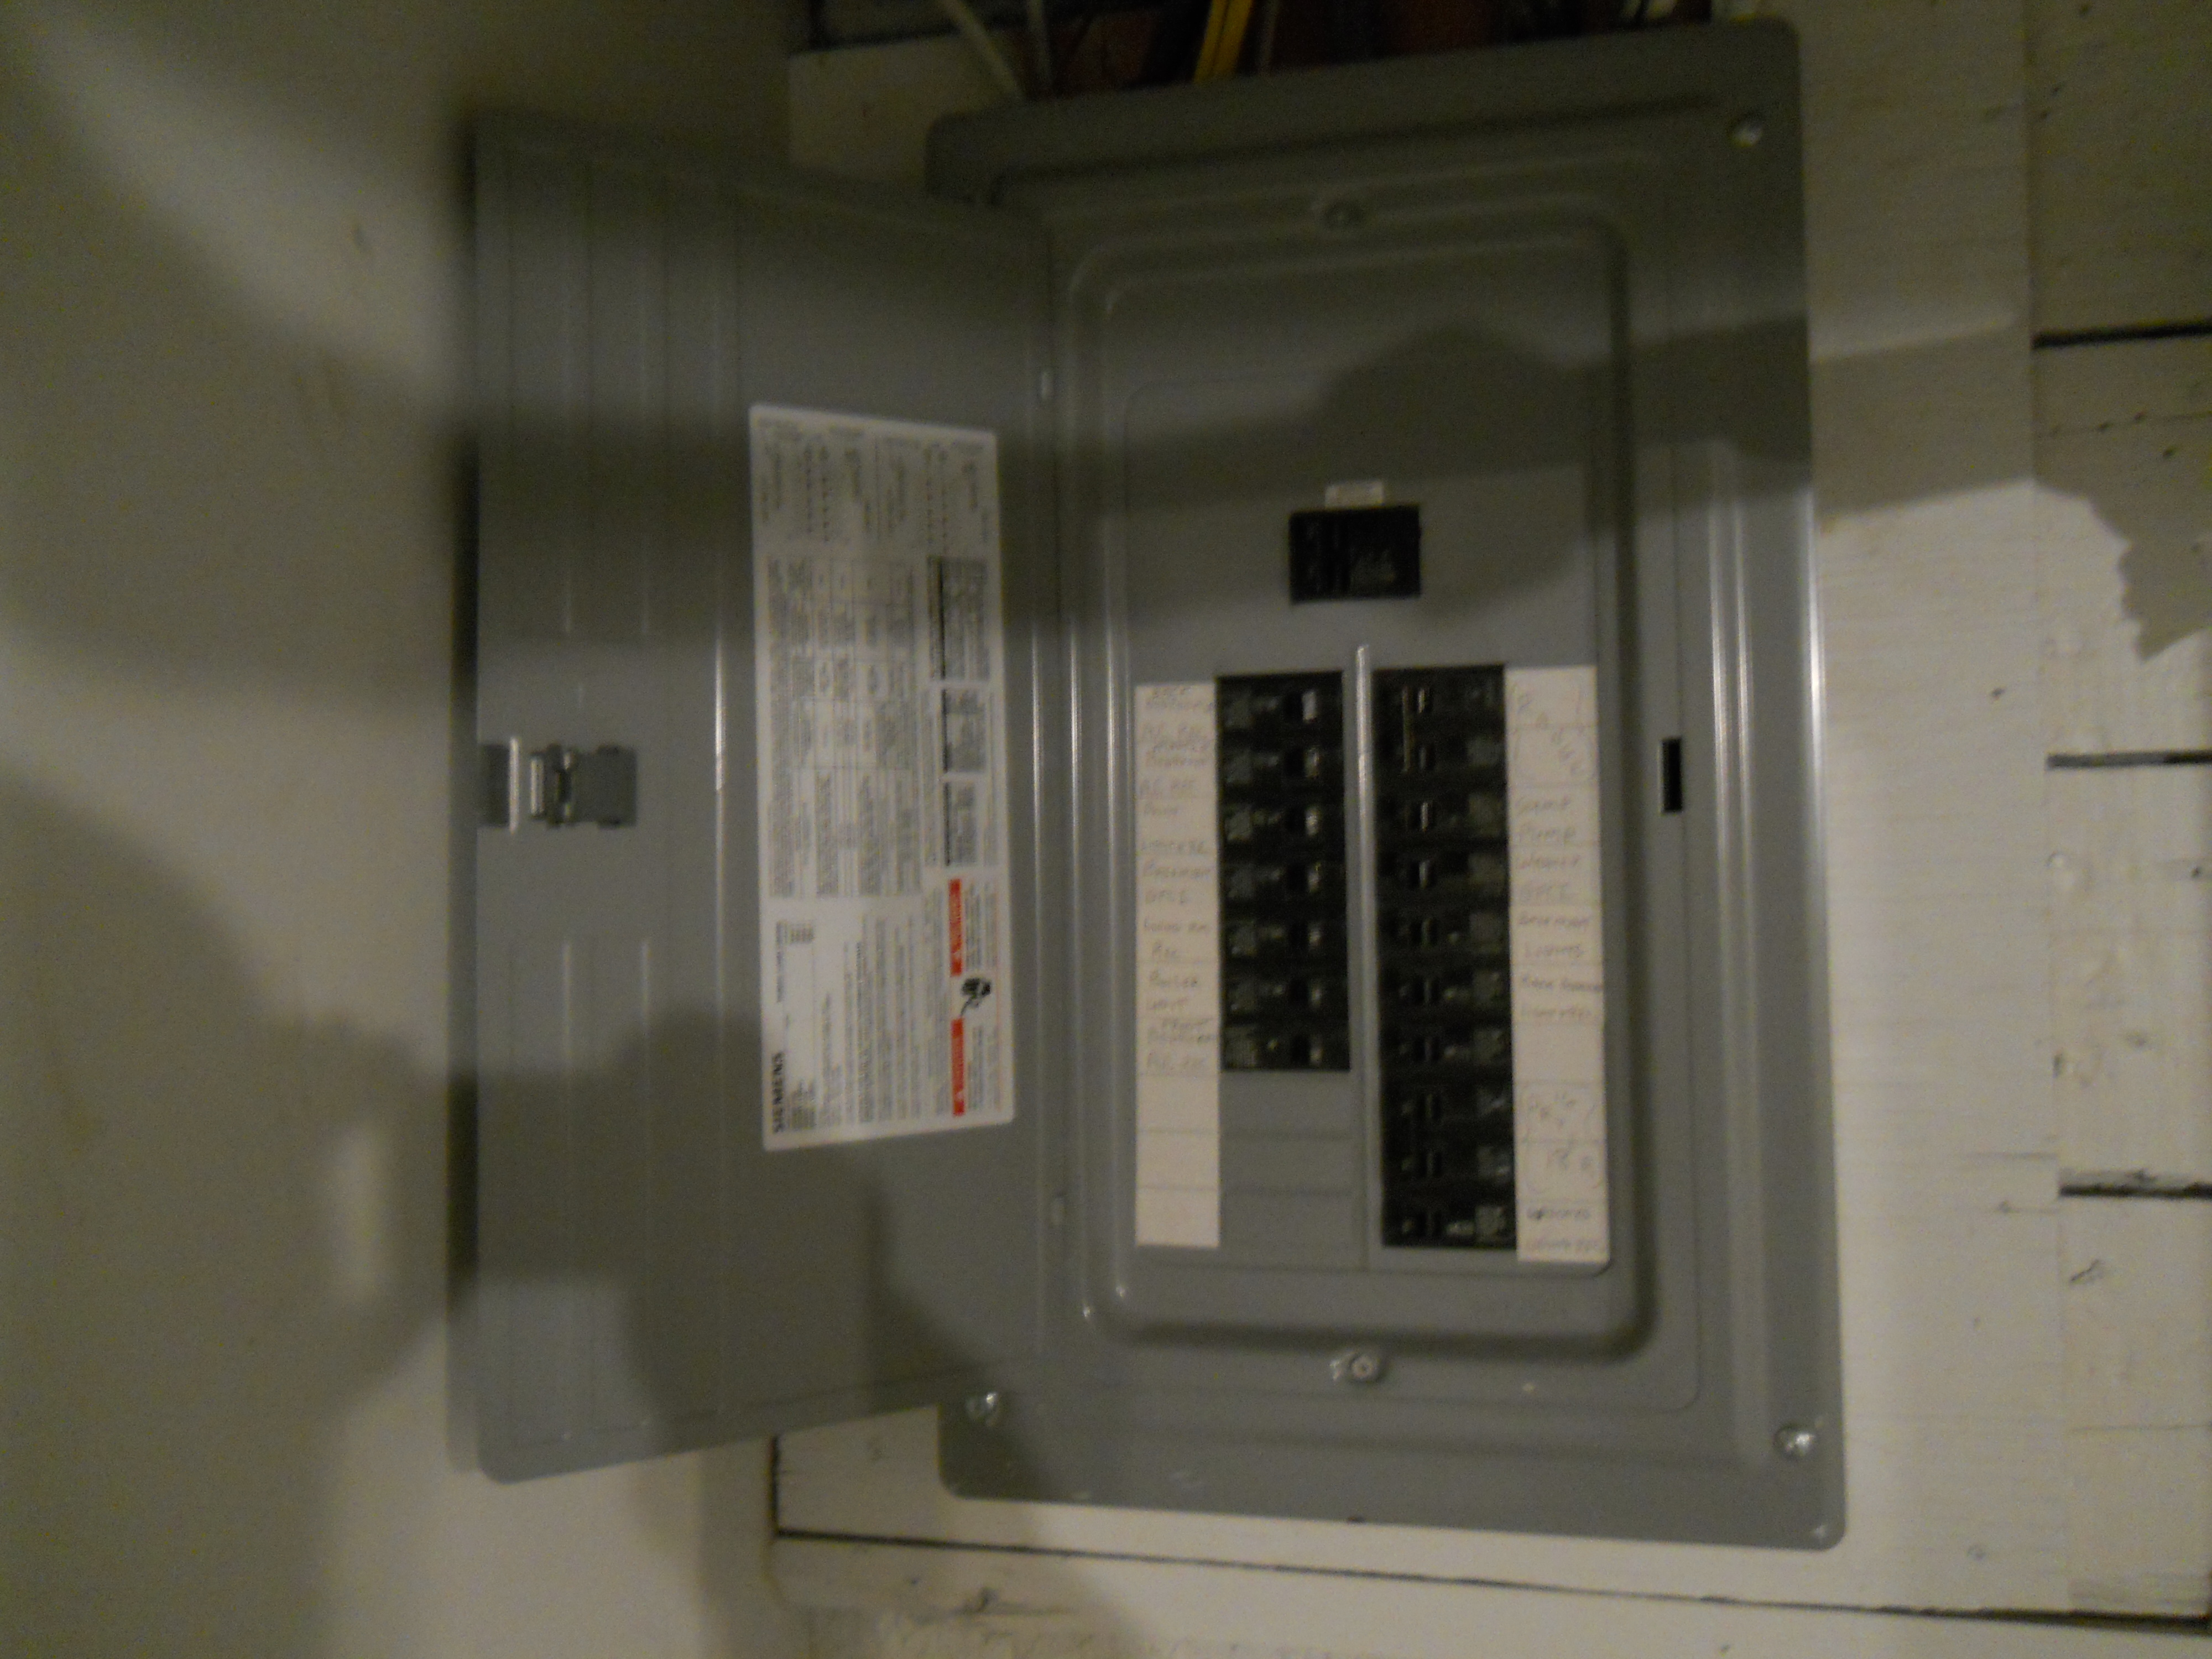 483 Mineola Ave Square Management Circuit Breaker Panel Box Updated Electric